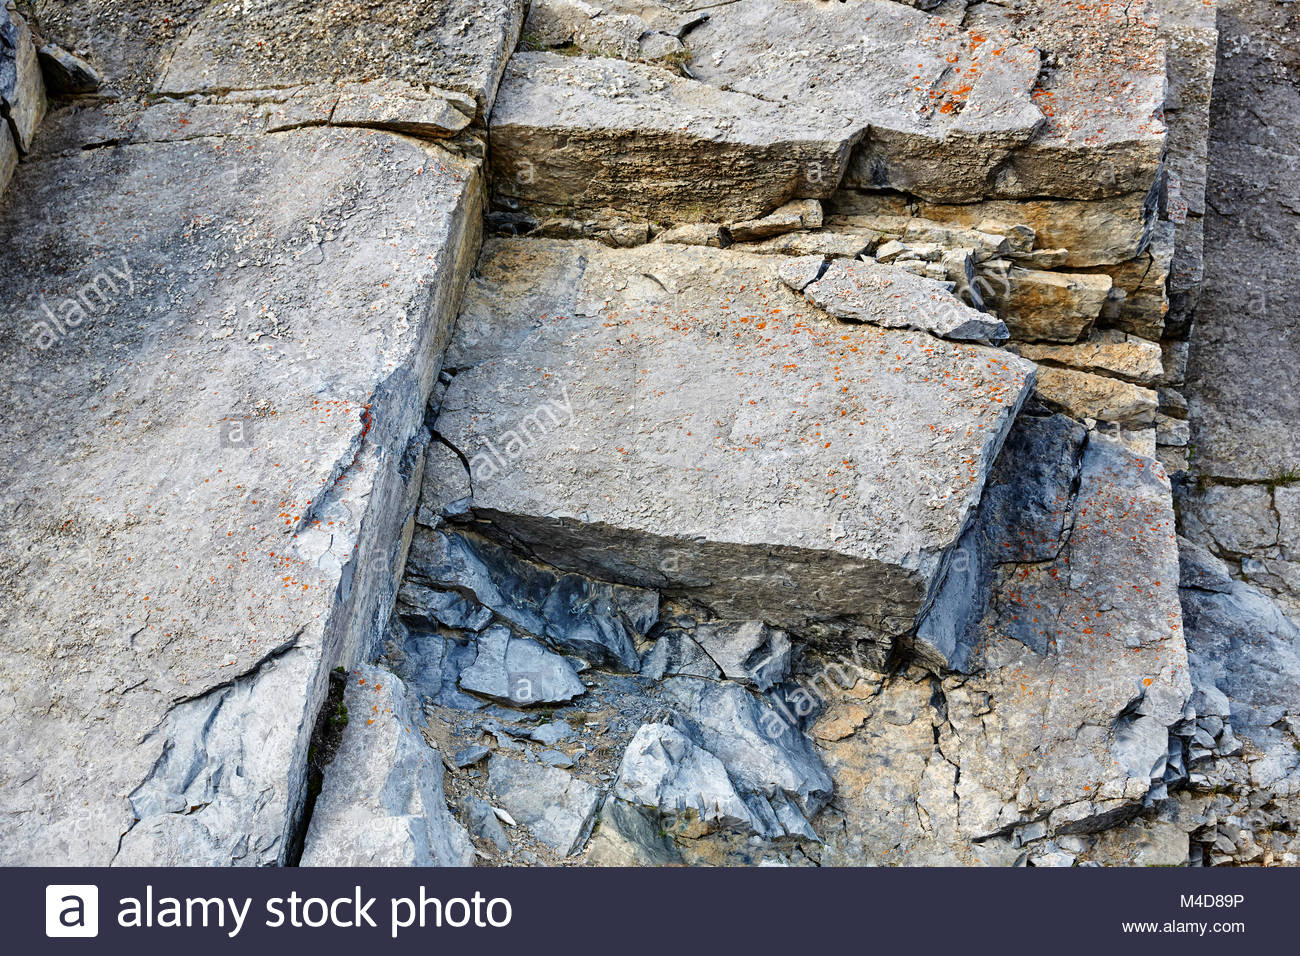 Close up of a rough and jagged Granite, Rock formation on the Canadian Rockies, mountain range. - Stock Image